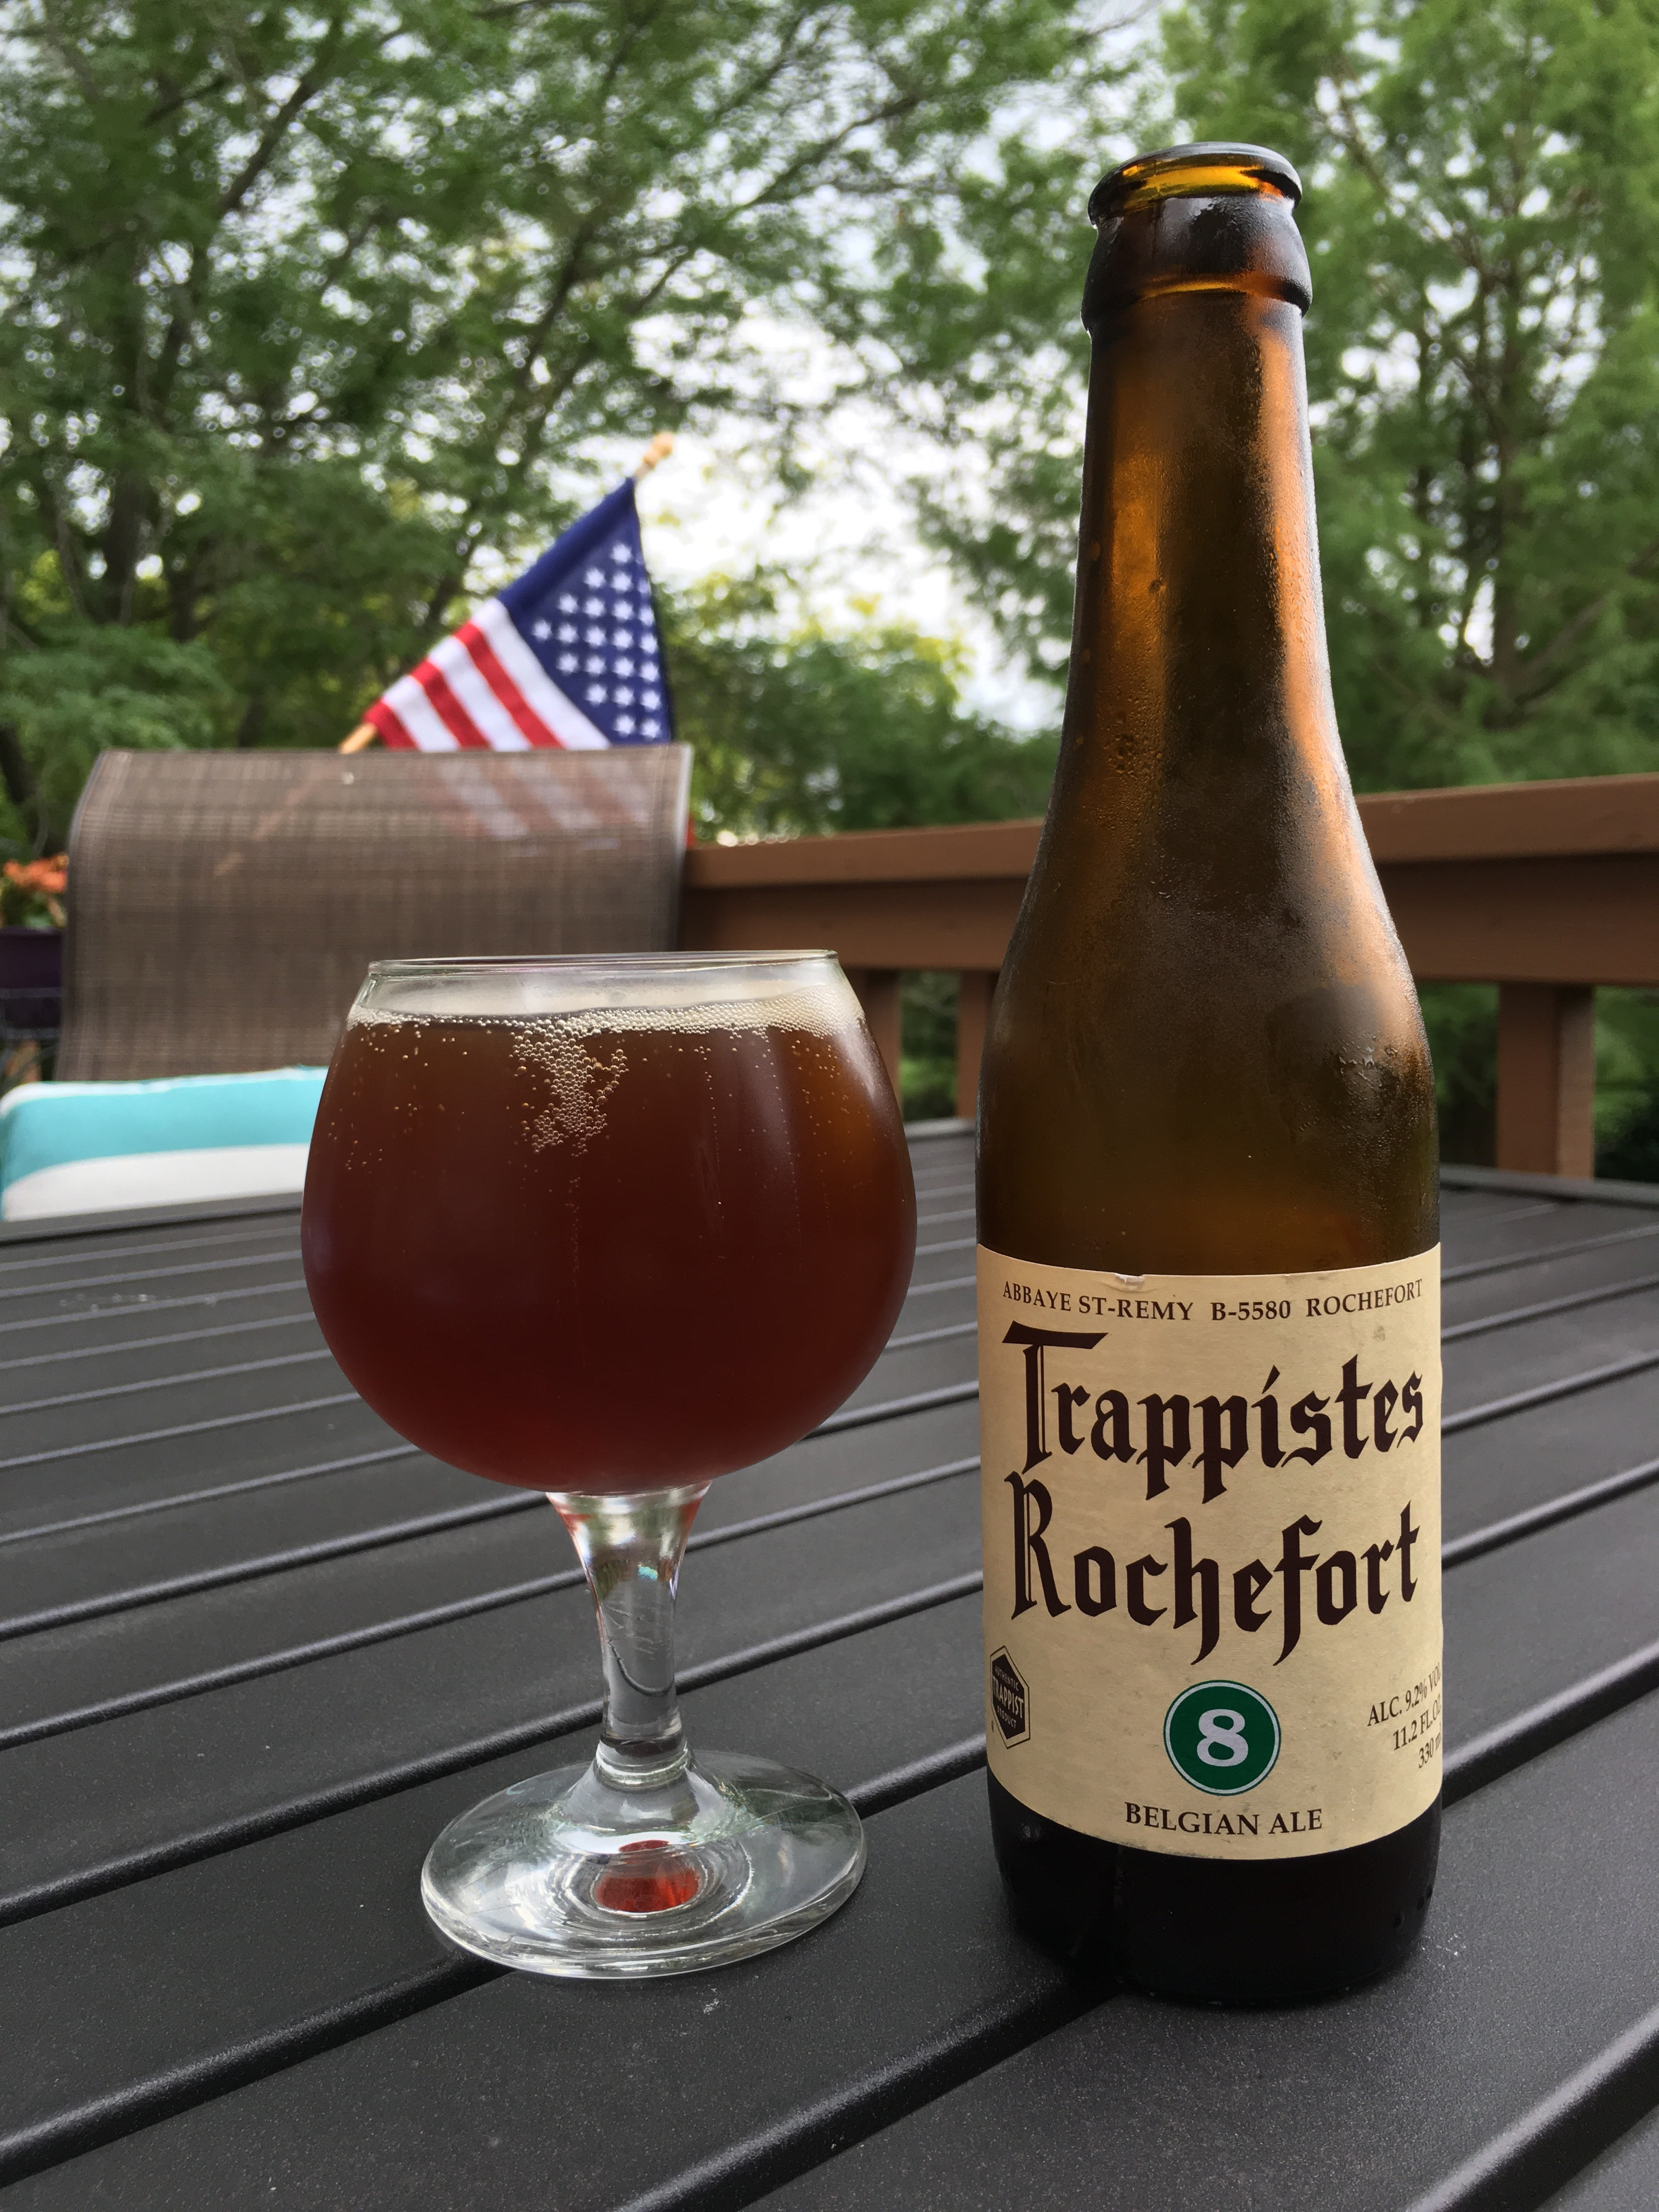 812. Trappistes Rochefort - 8 Belgian Ale